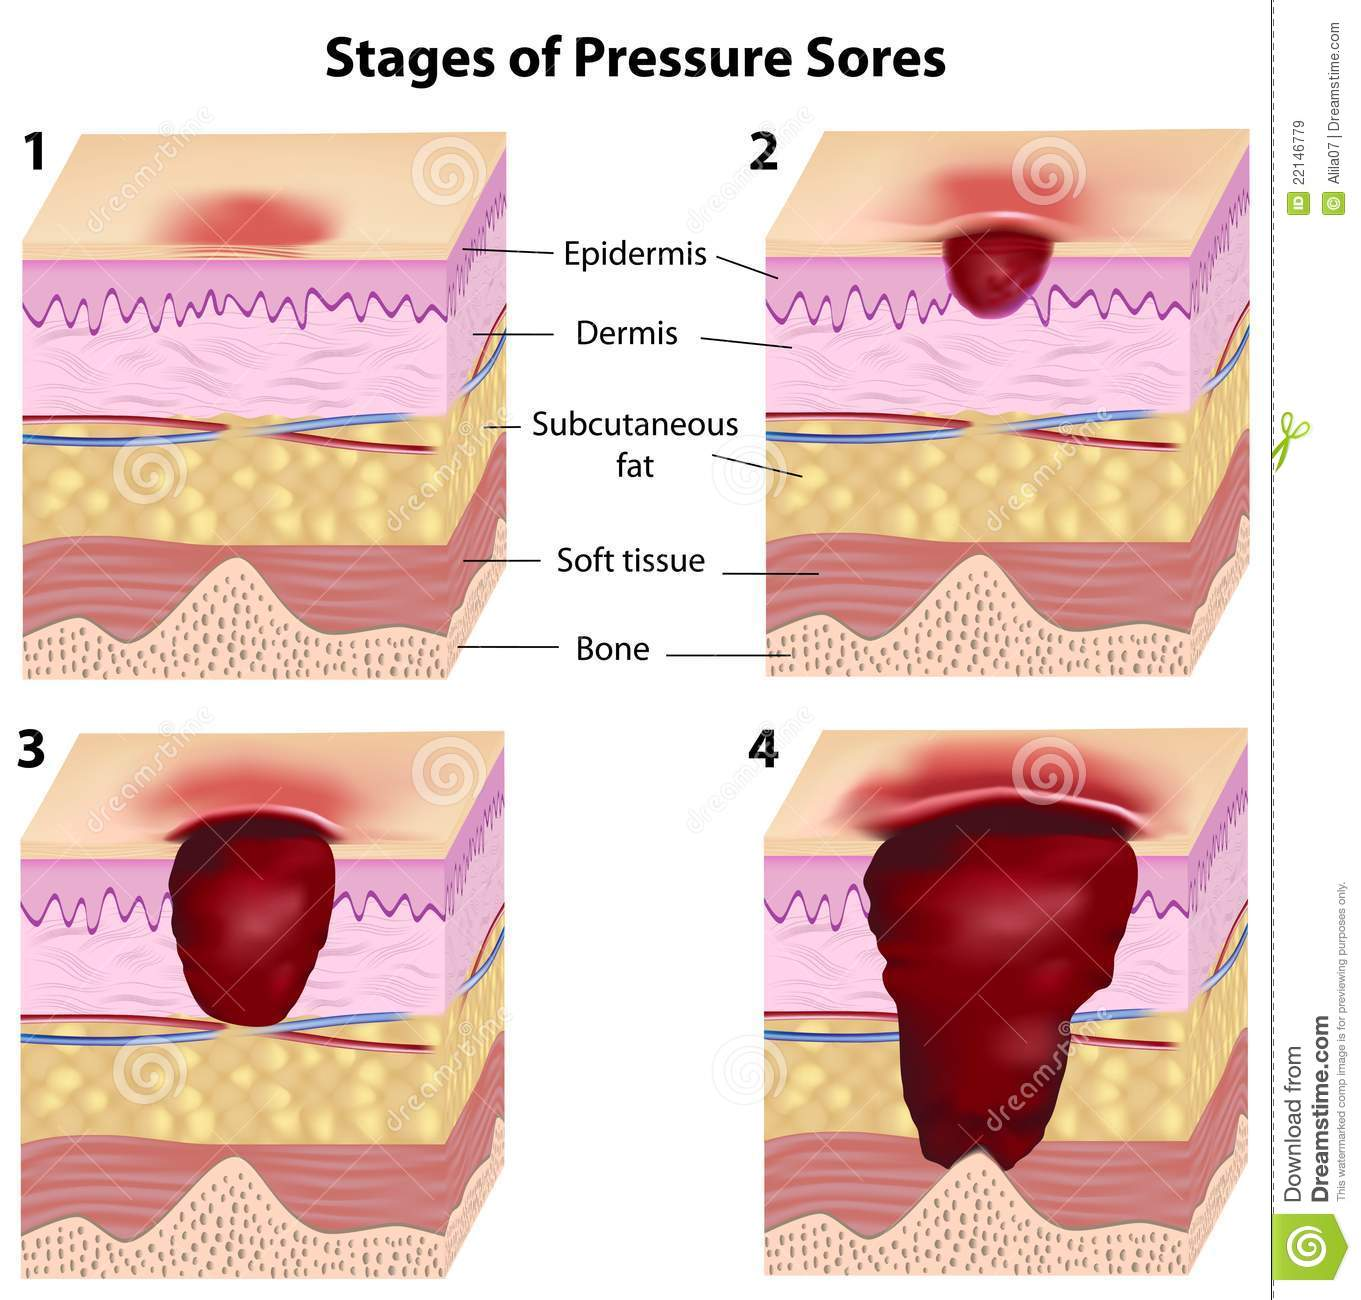 stages of pressure sores royalty free stock images - image: 22146779